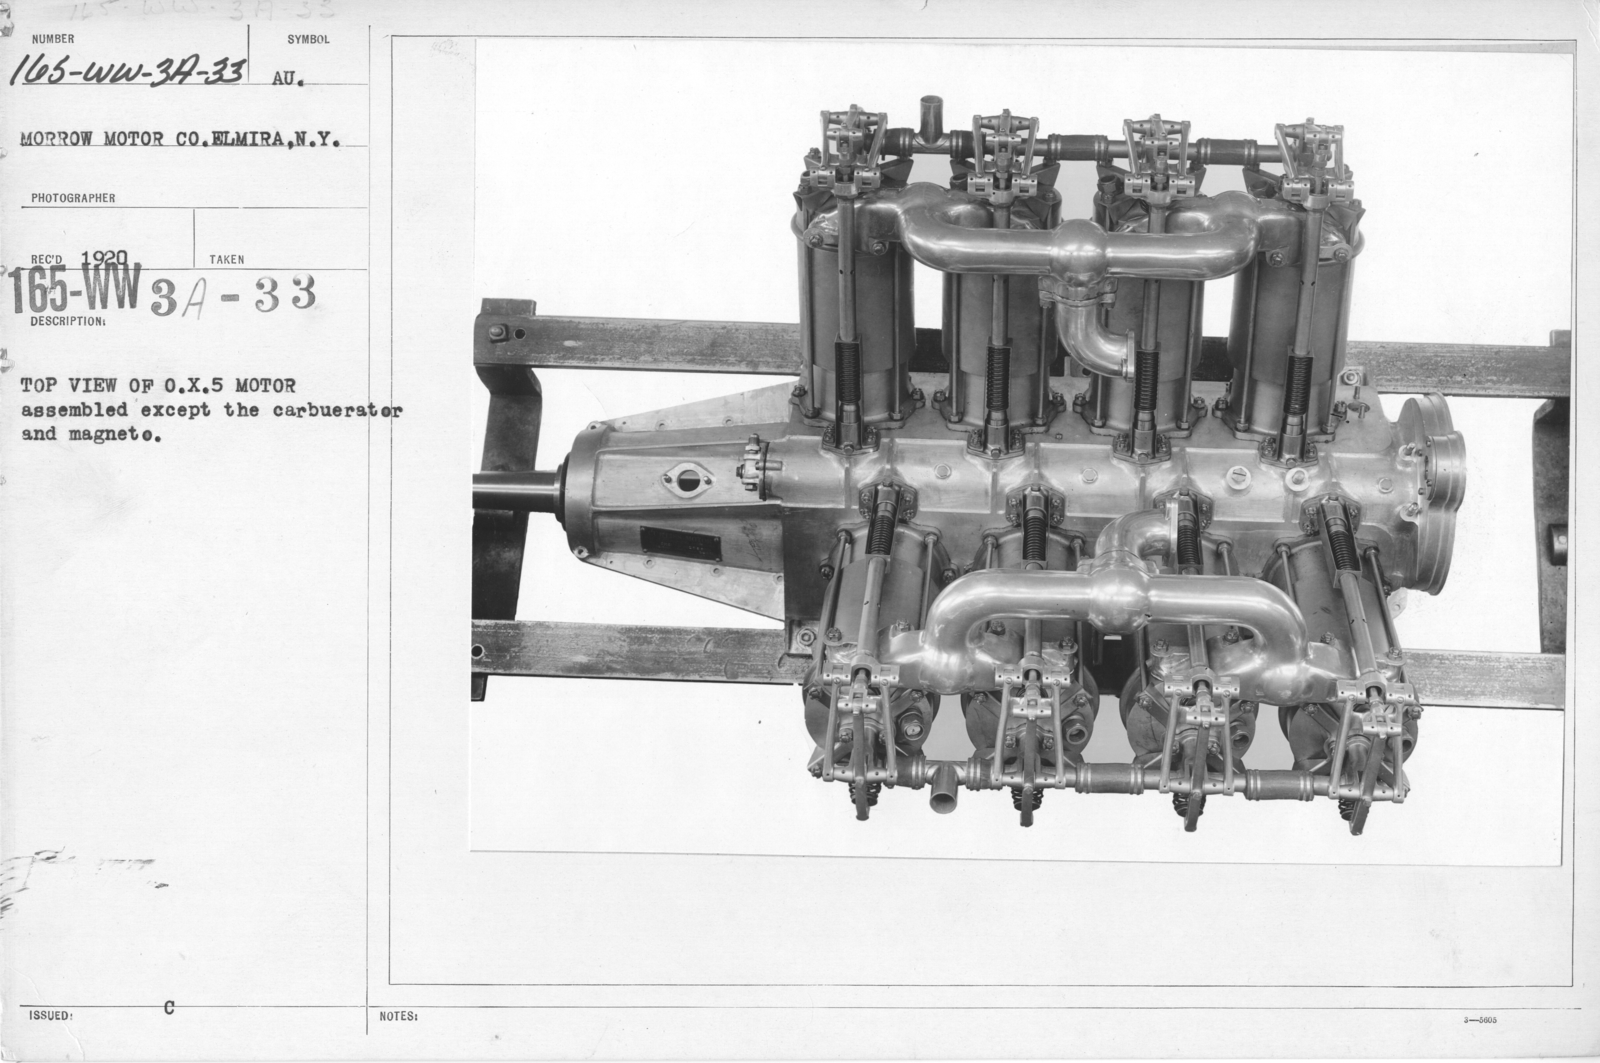 Airplanes - Engines - Top view of O X 5 Motor assembled